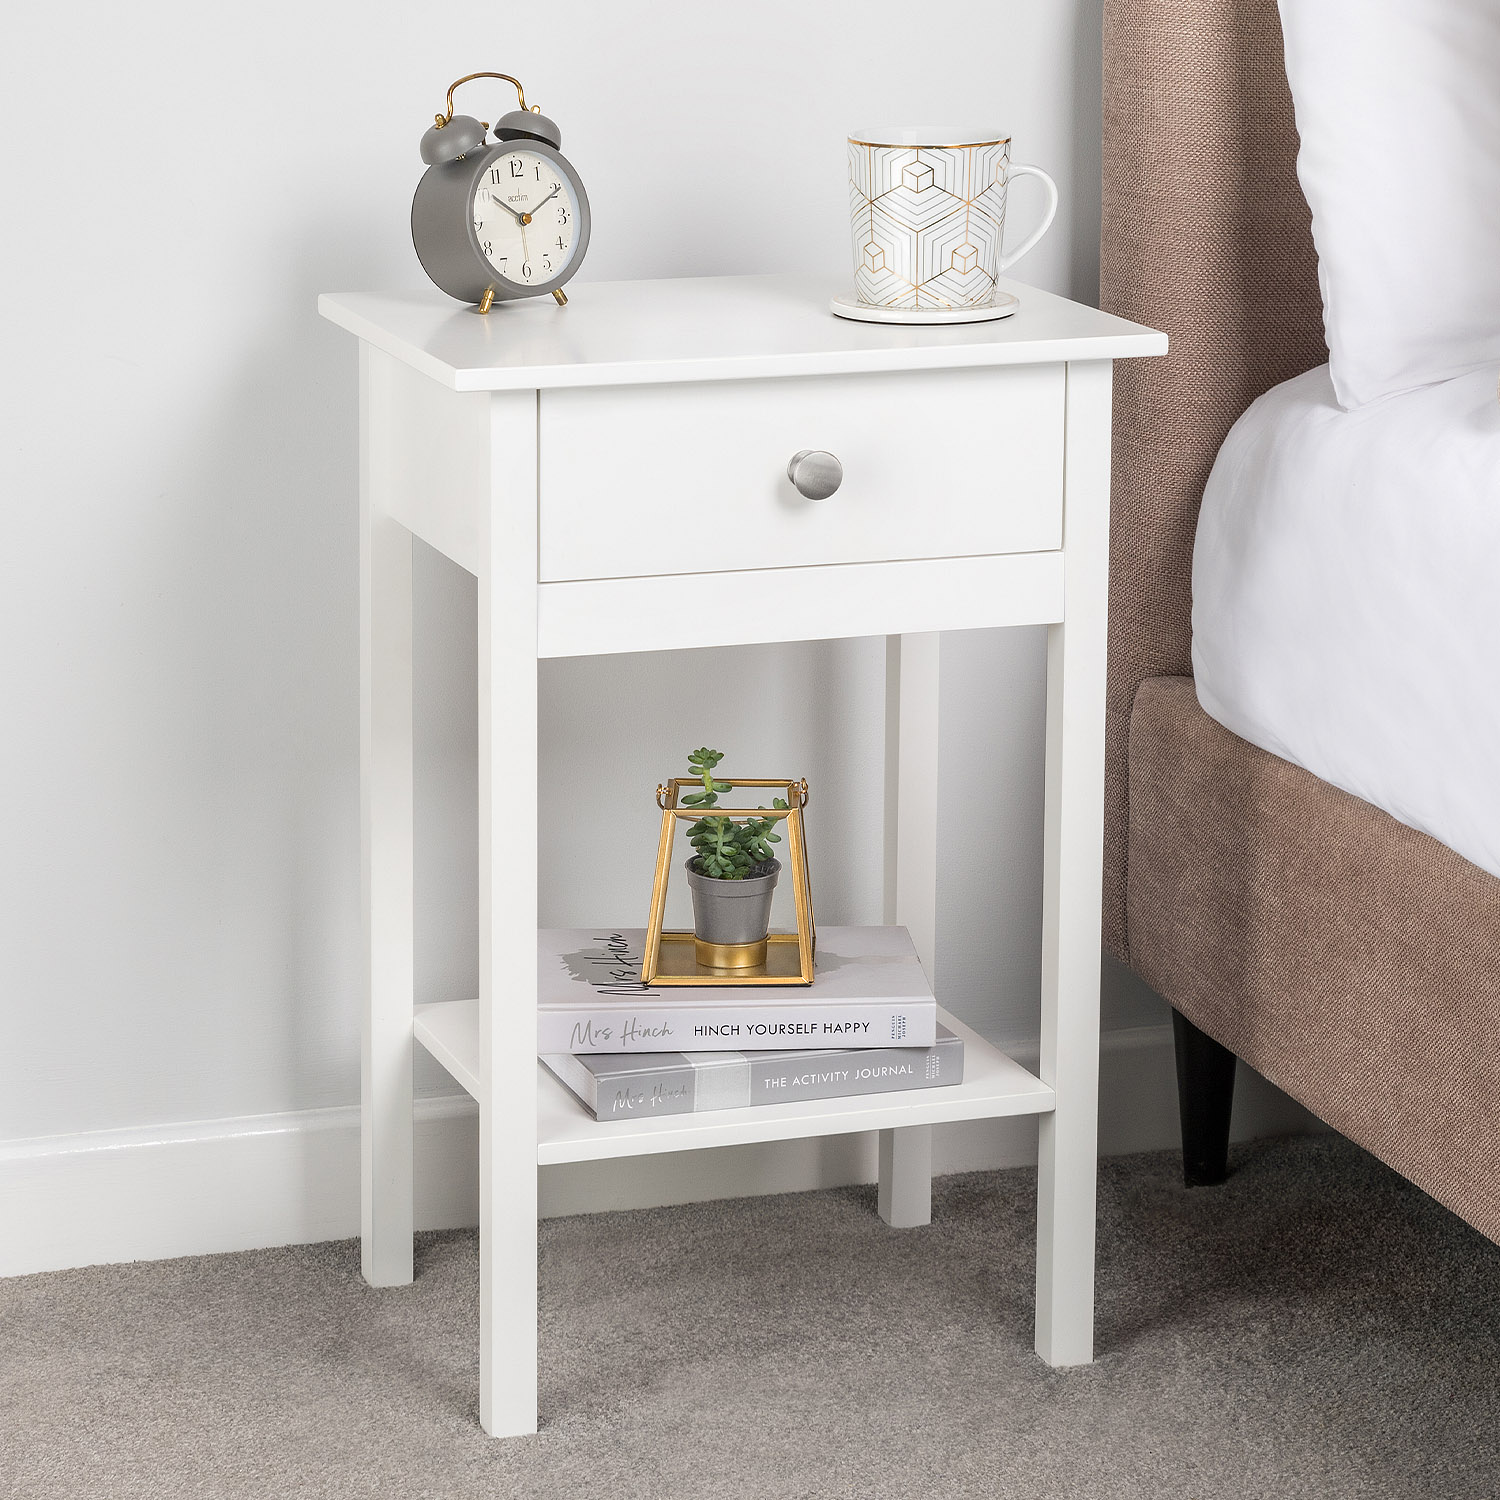 Image of White Bedside Table With Shelf